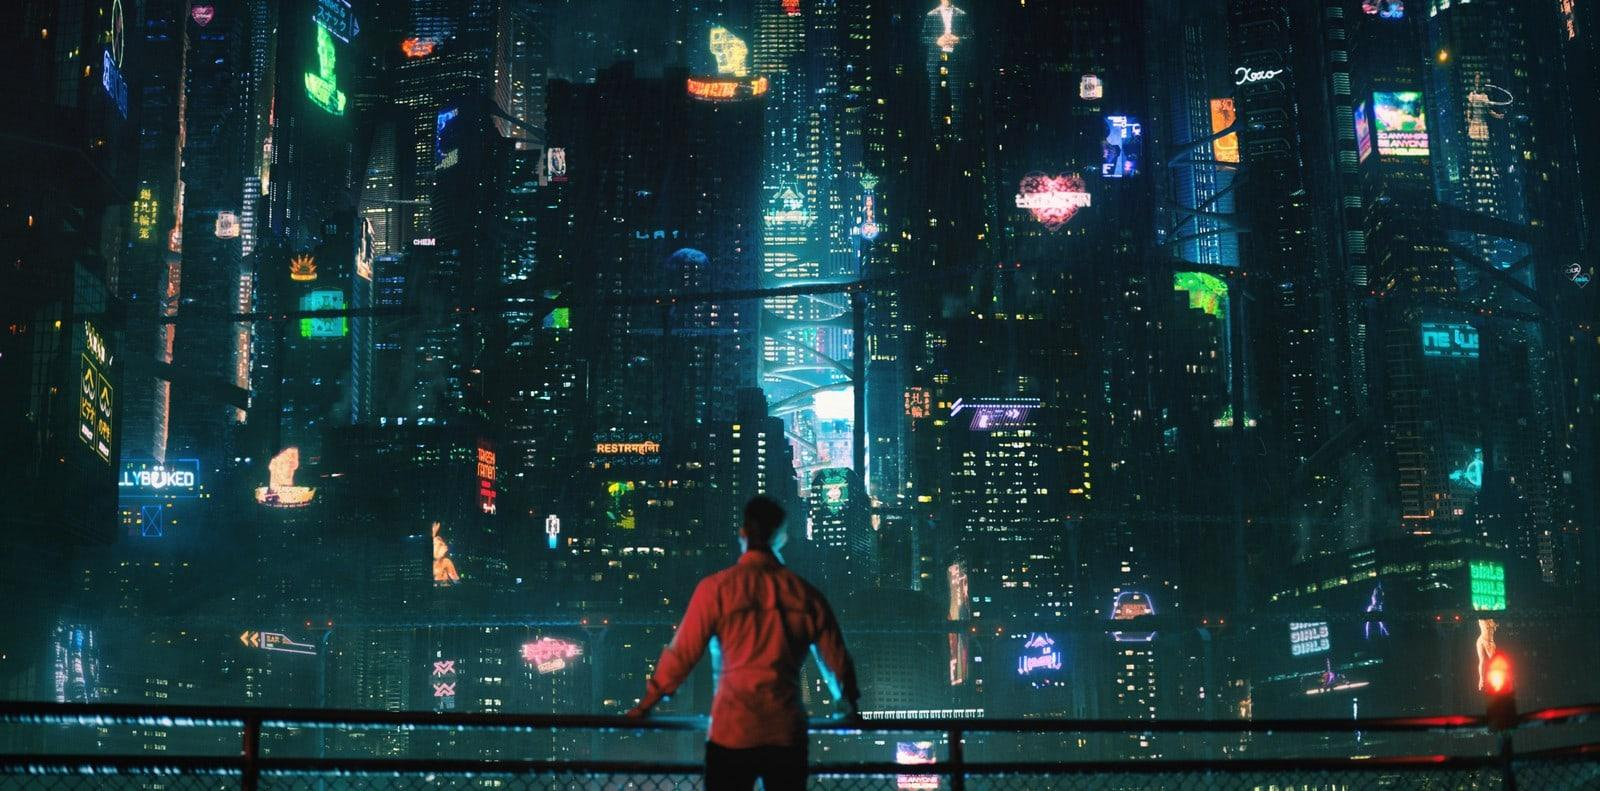 'Altered Carbon' is more than just a 'Blade Runner' ripoff | Engadget